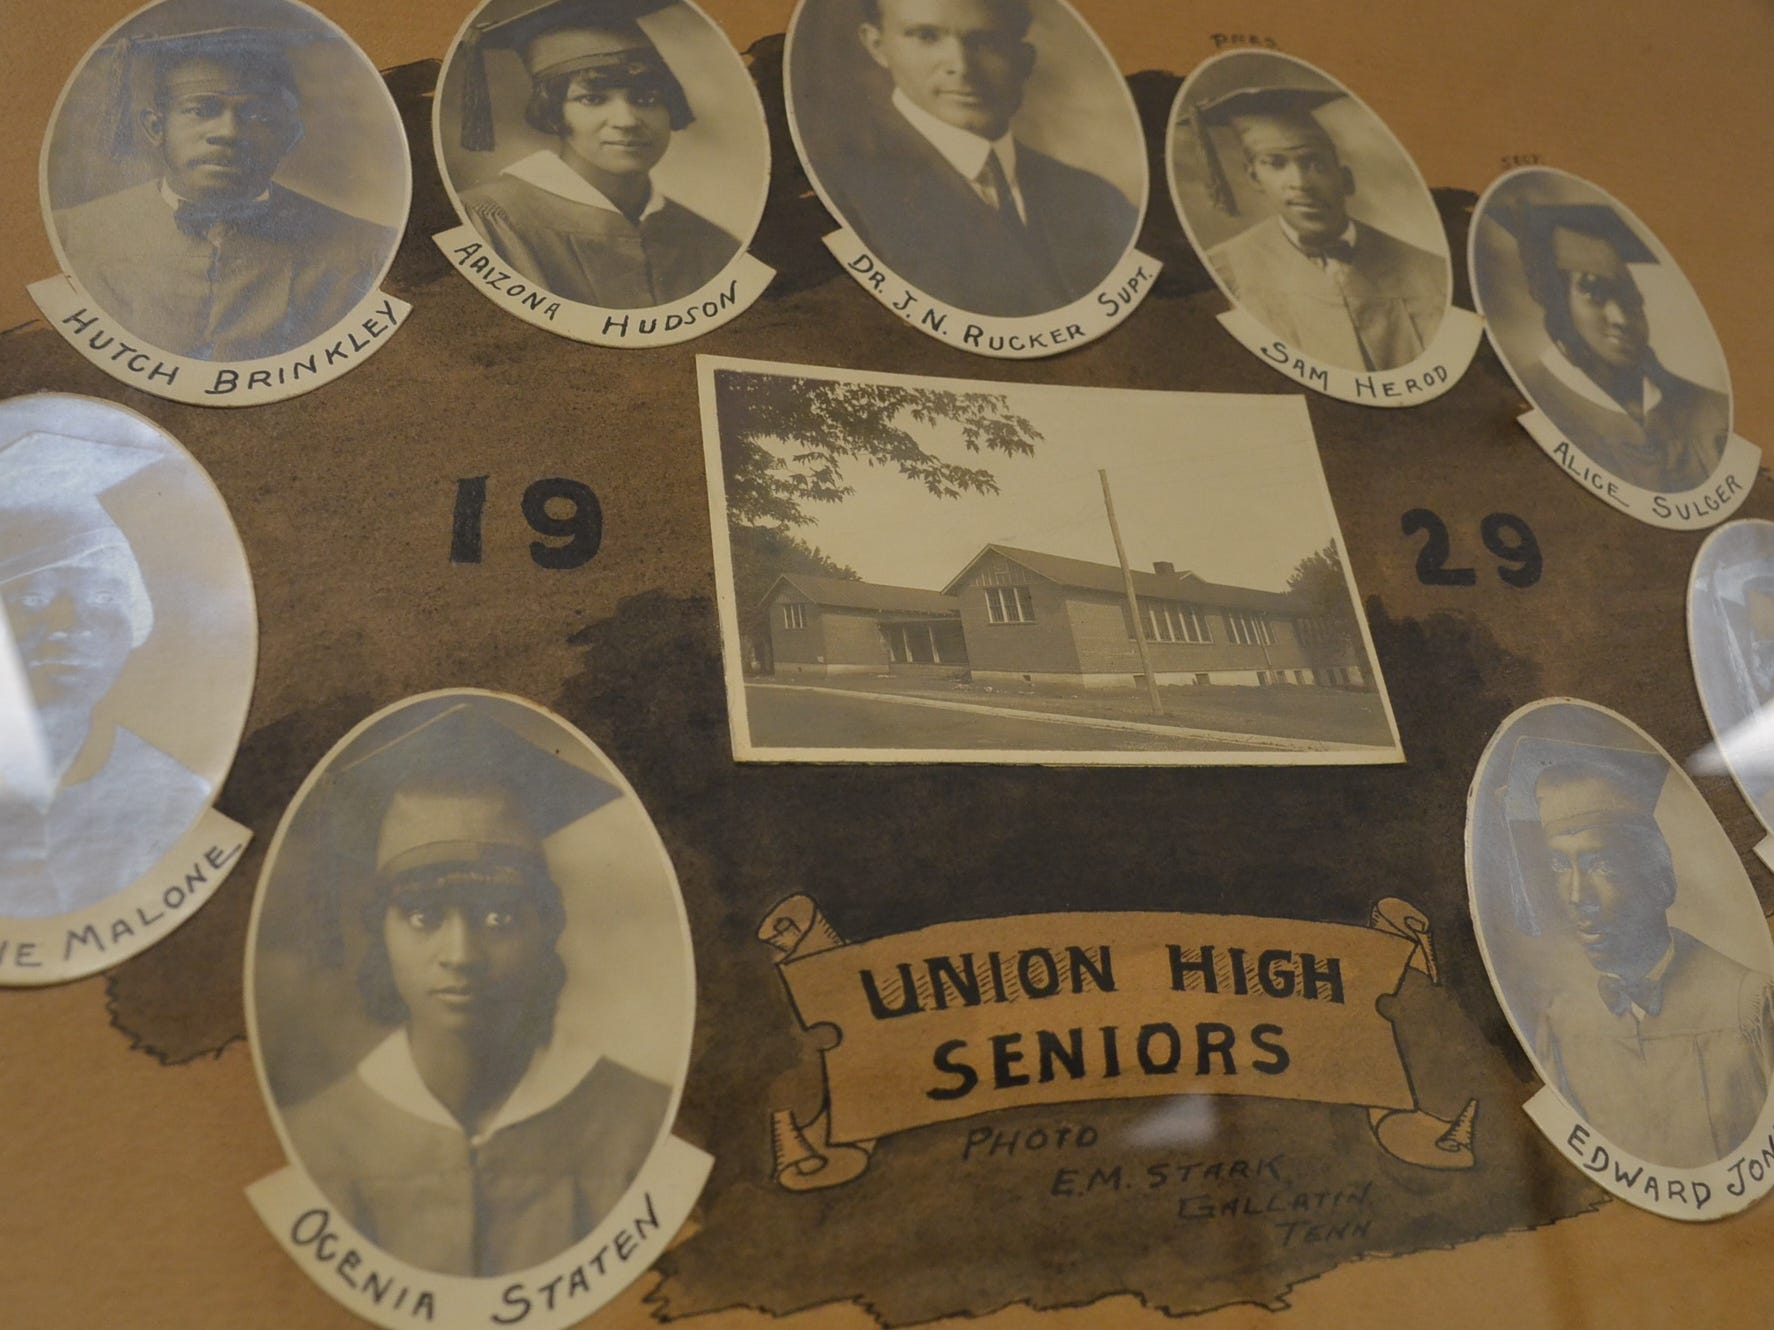 This was the senior class of 1929 at Union High School in Gallatin.